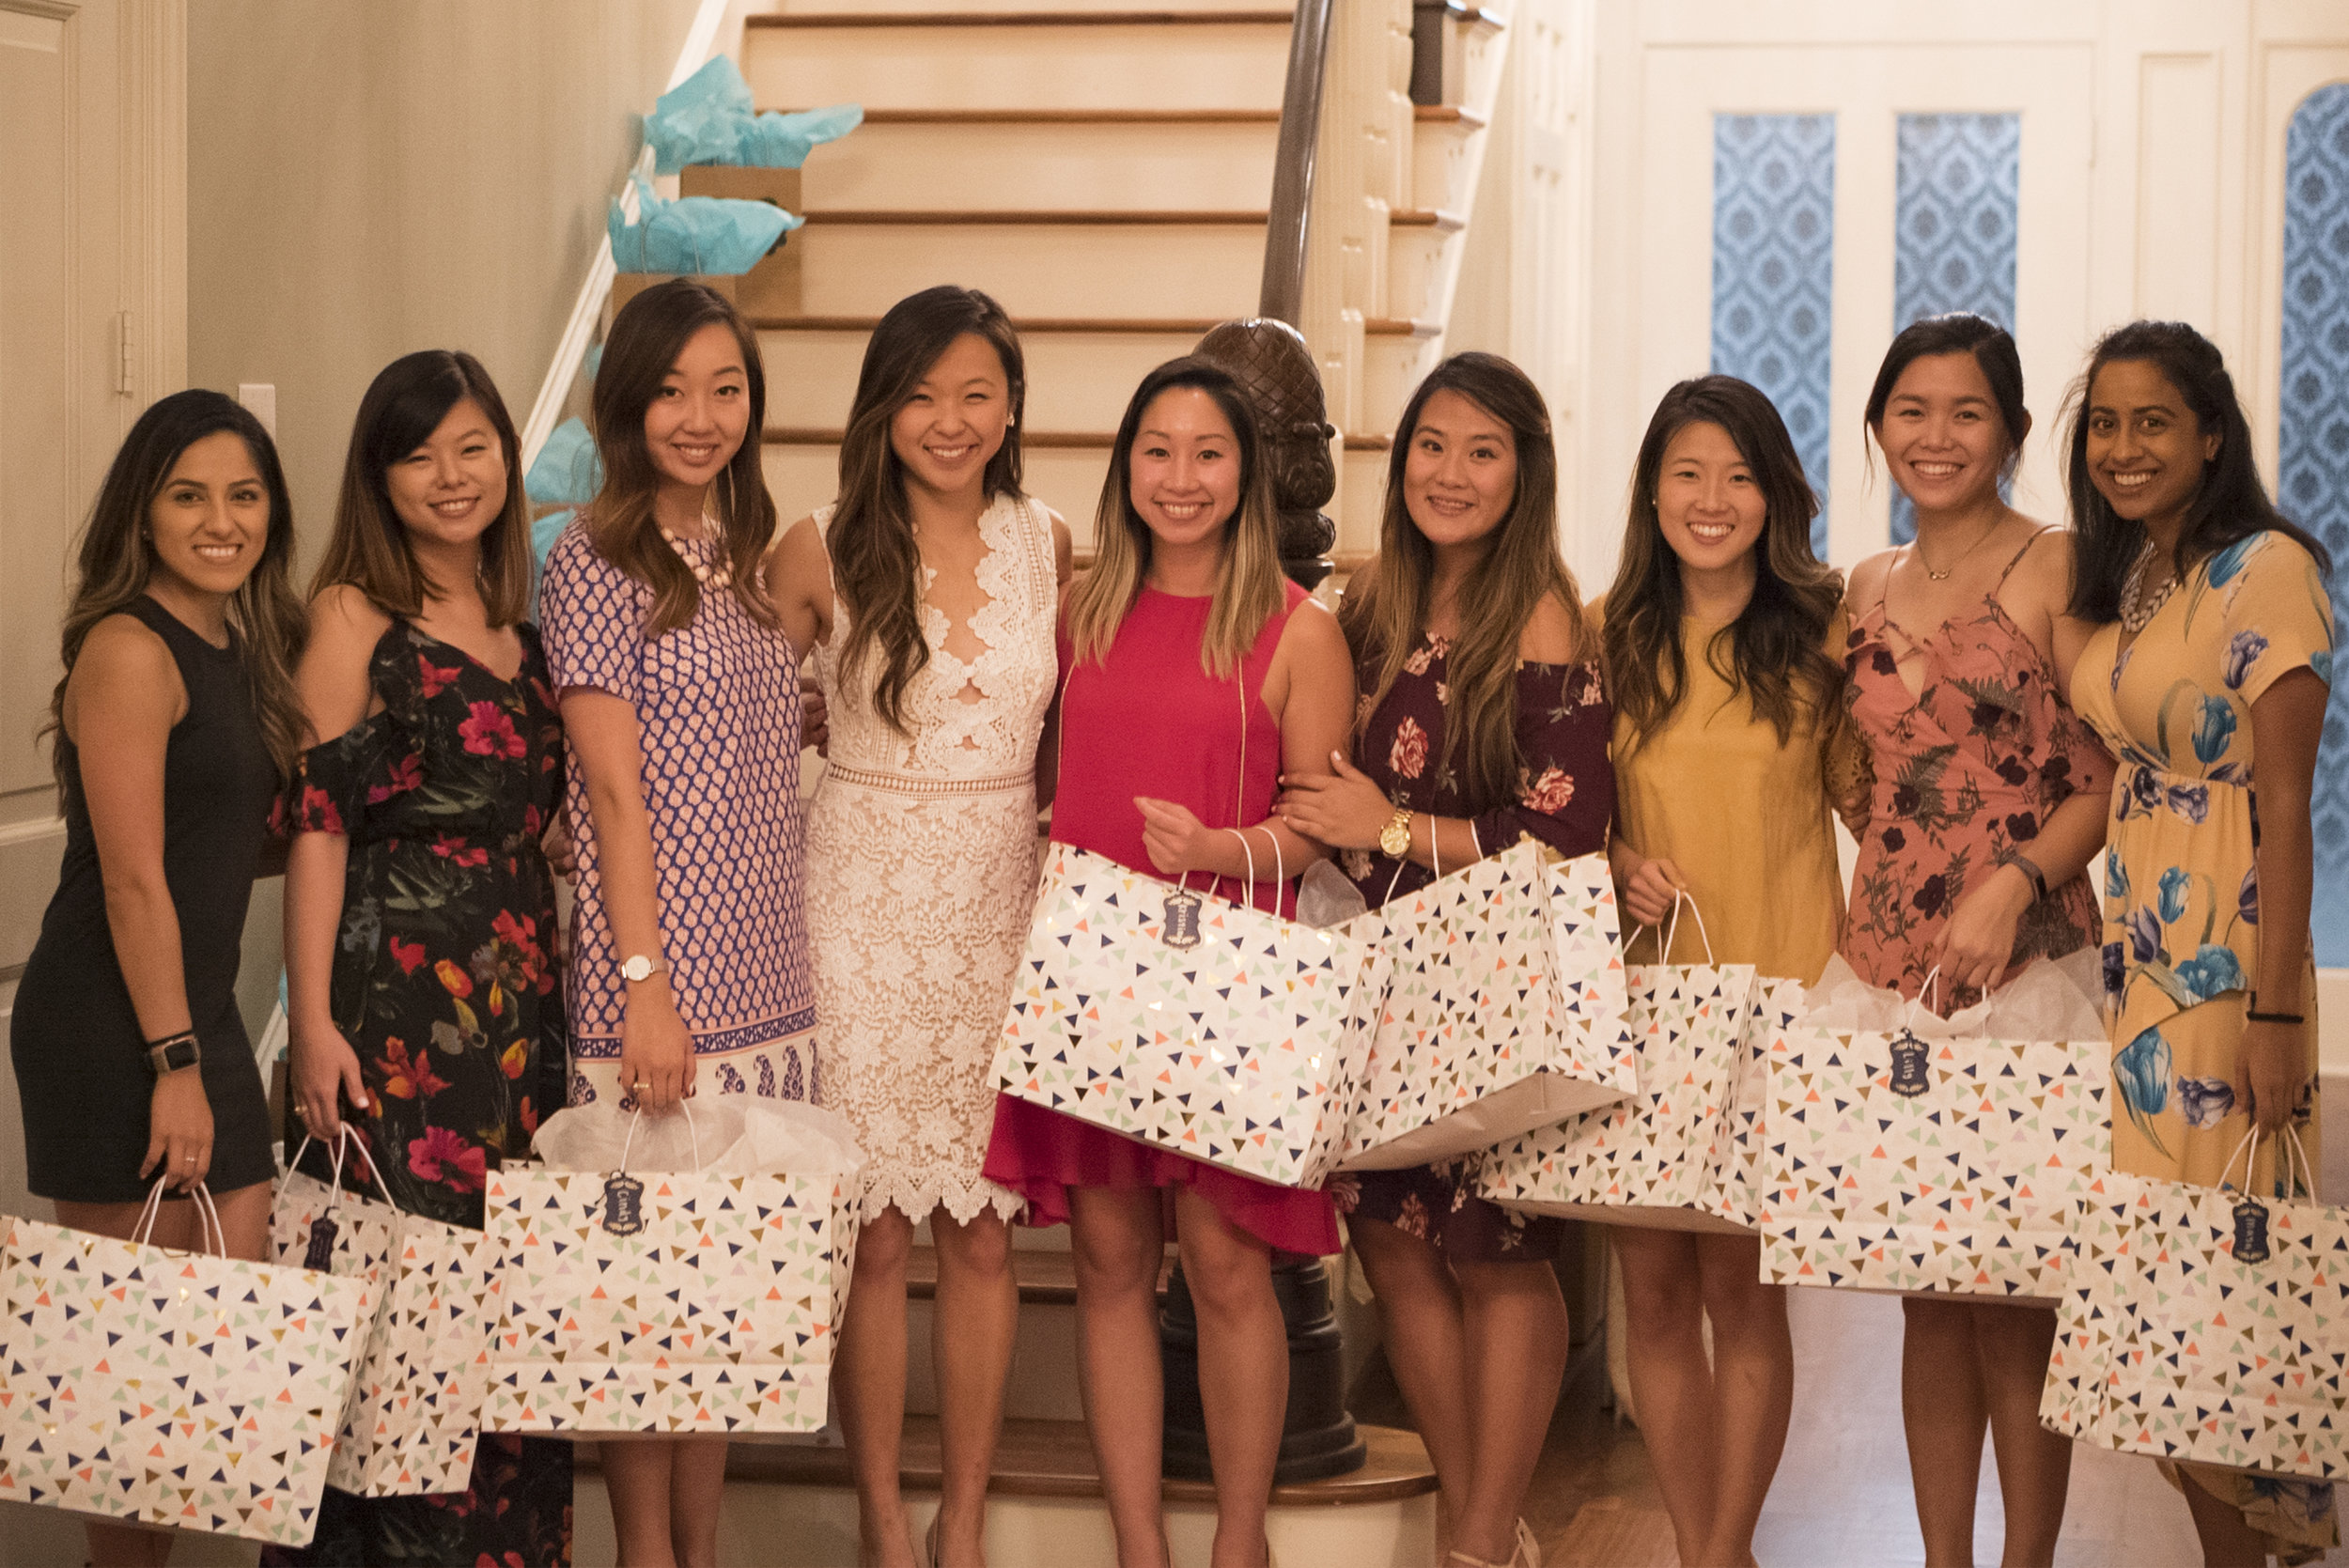 And the bridesmaids.